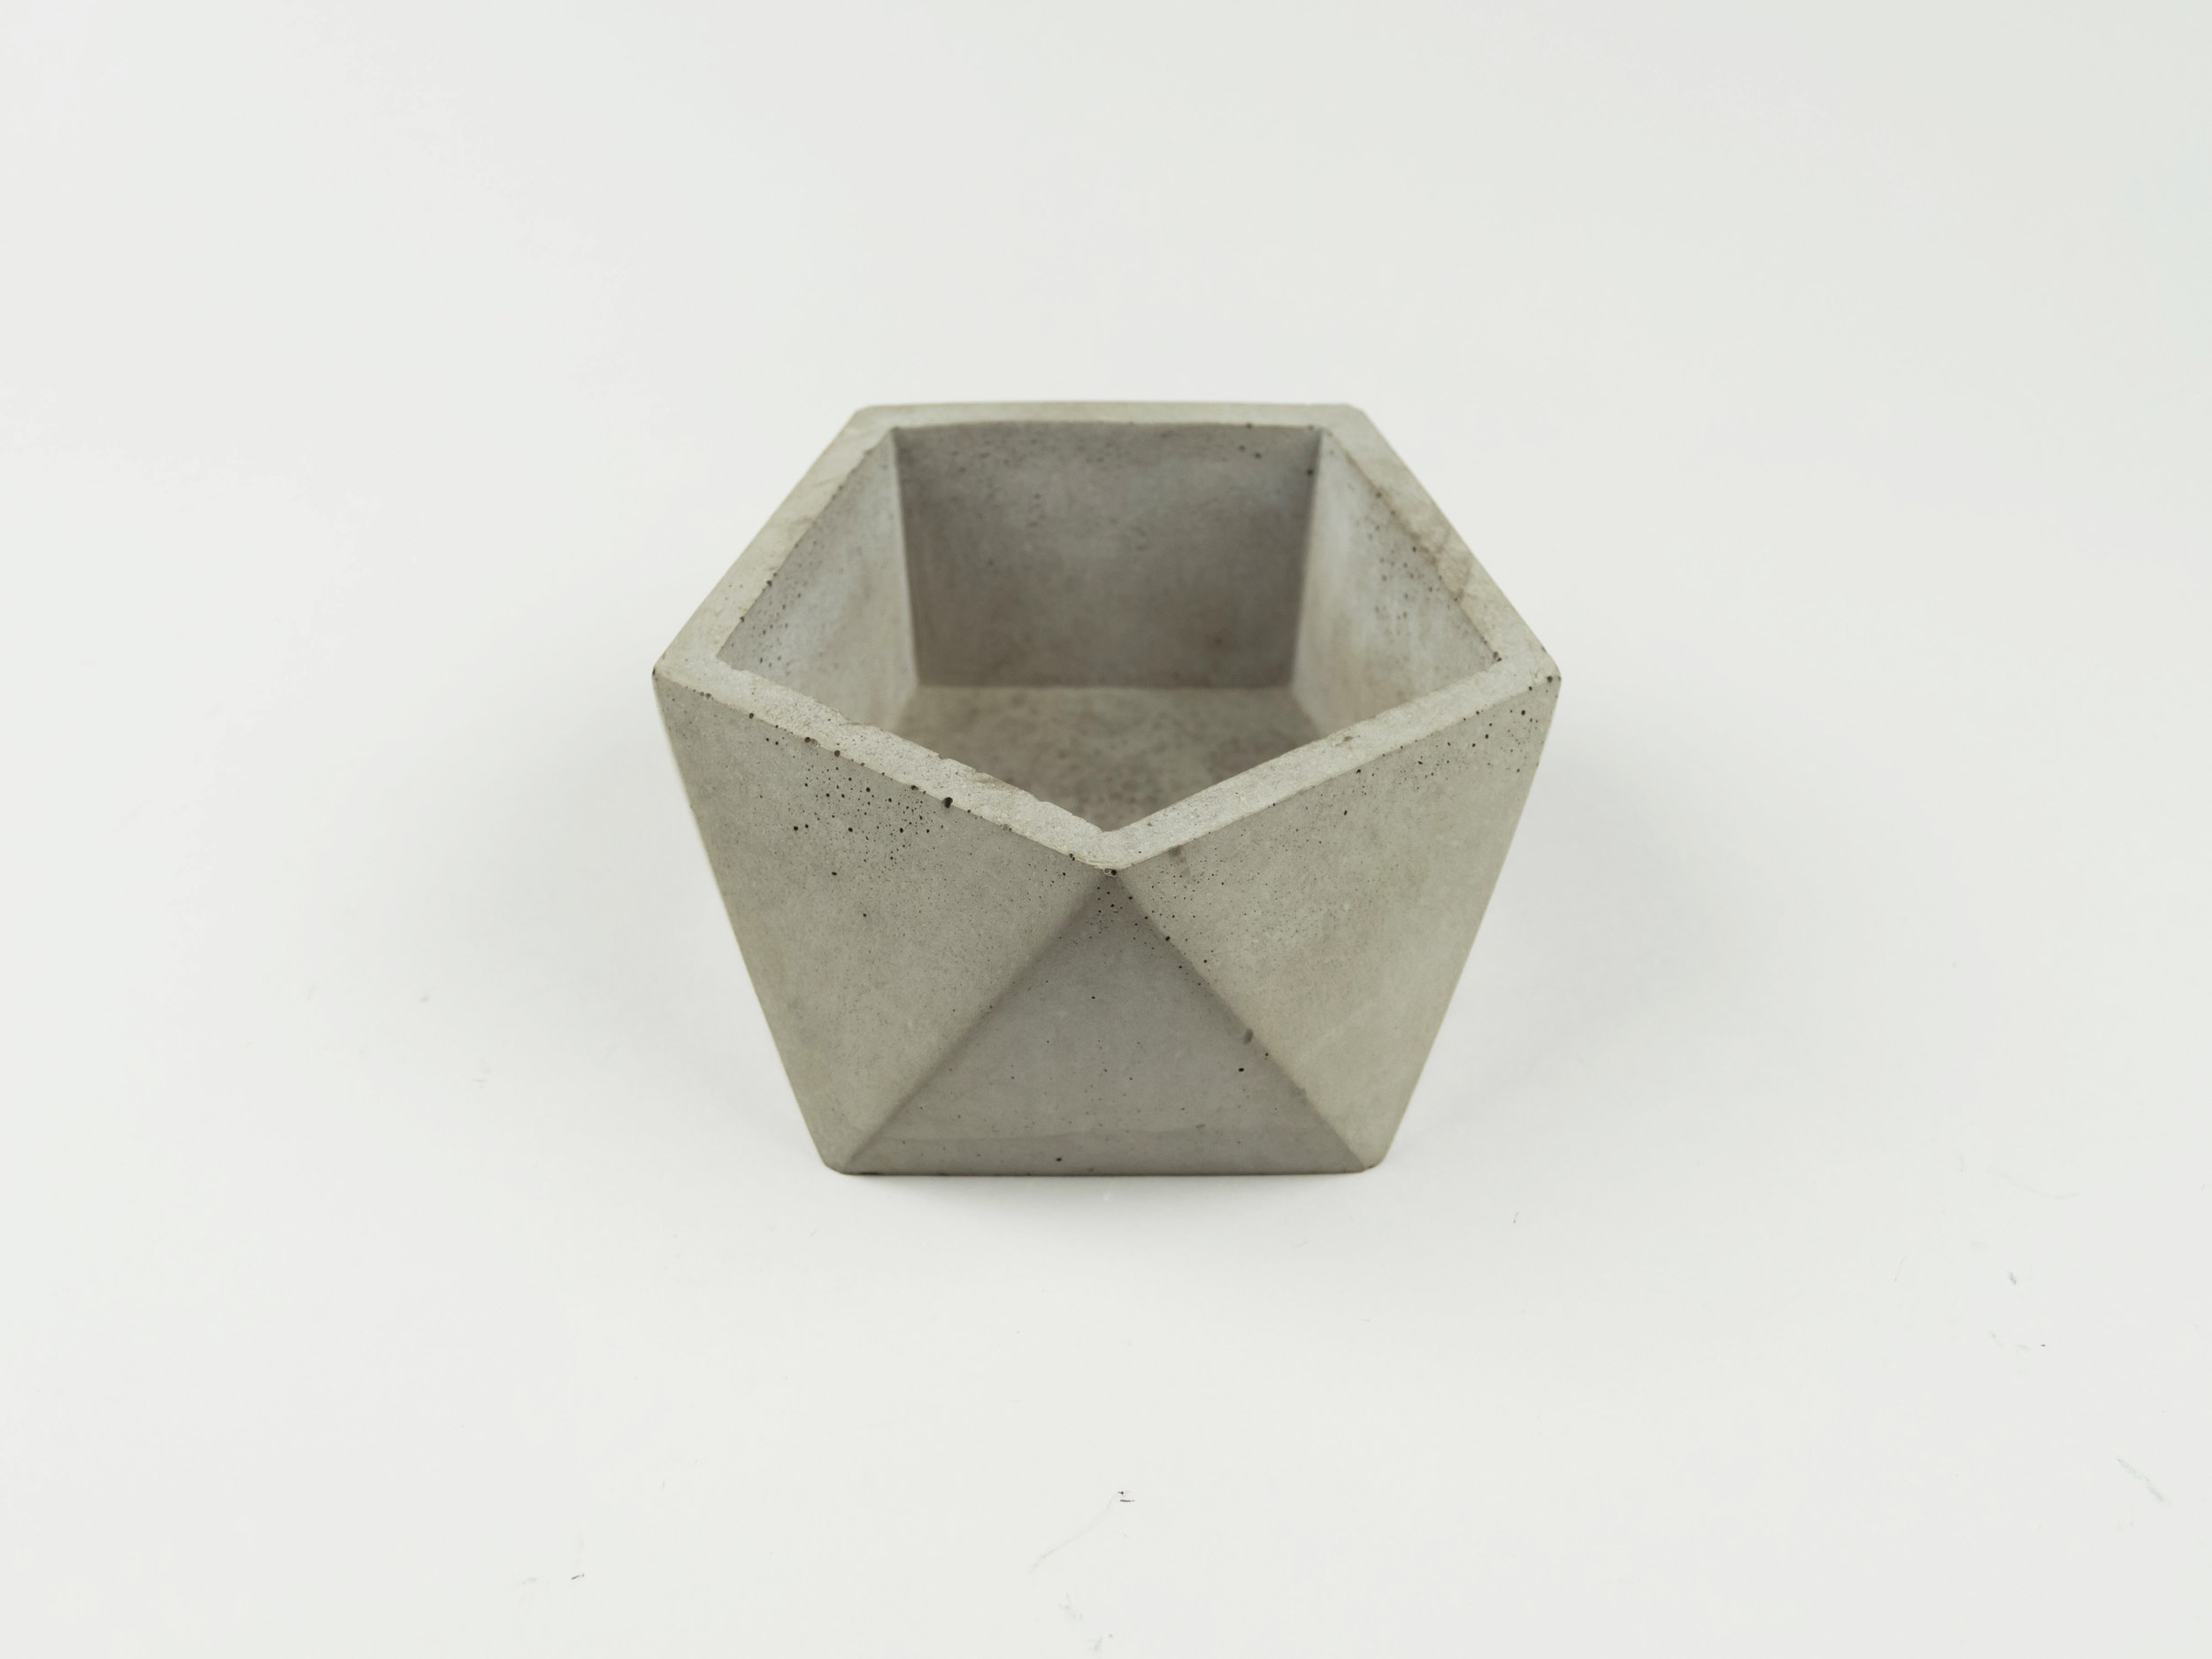 Natural-Color-Geometric-Concrete-Vessel-Succulent-Dish-by-The-Savvy-Heart.jpg